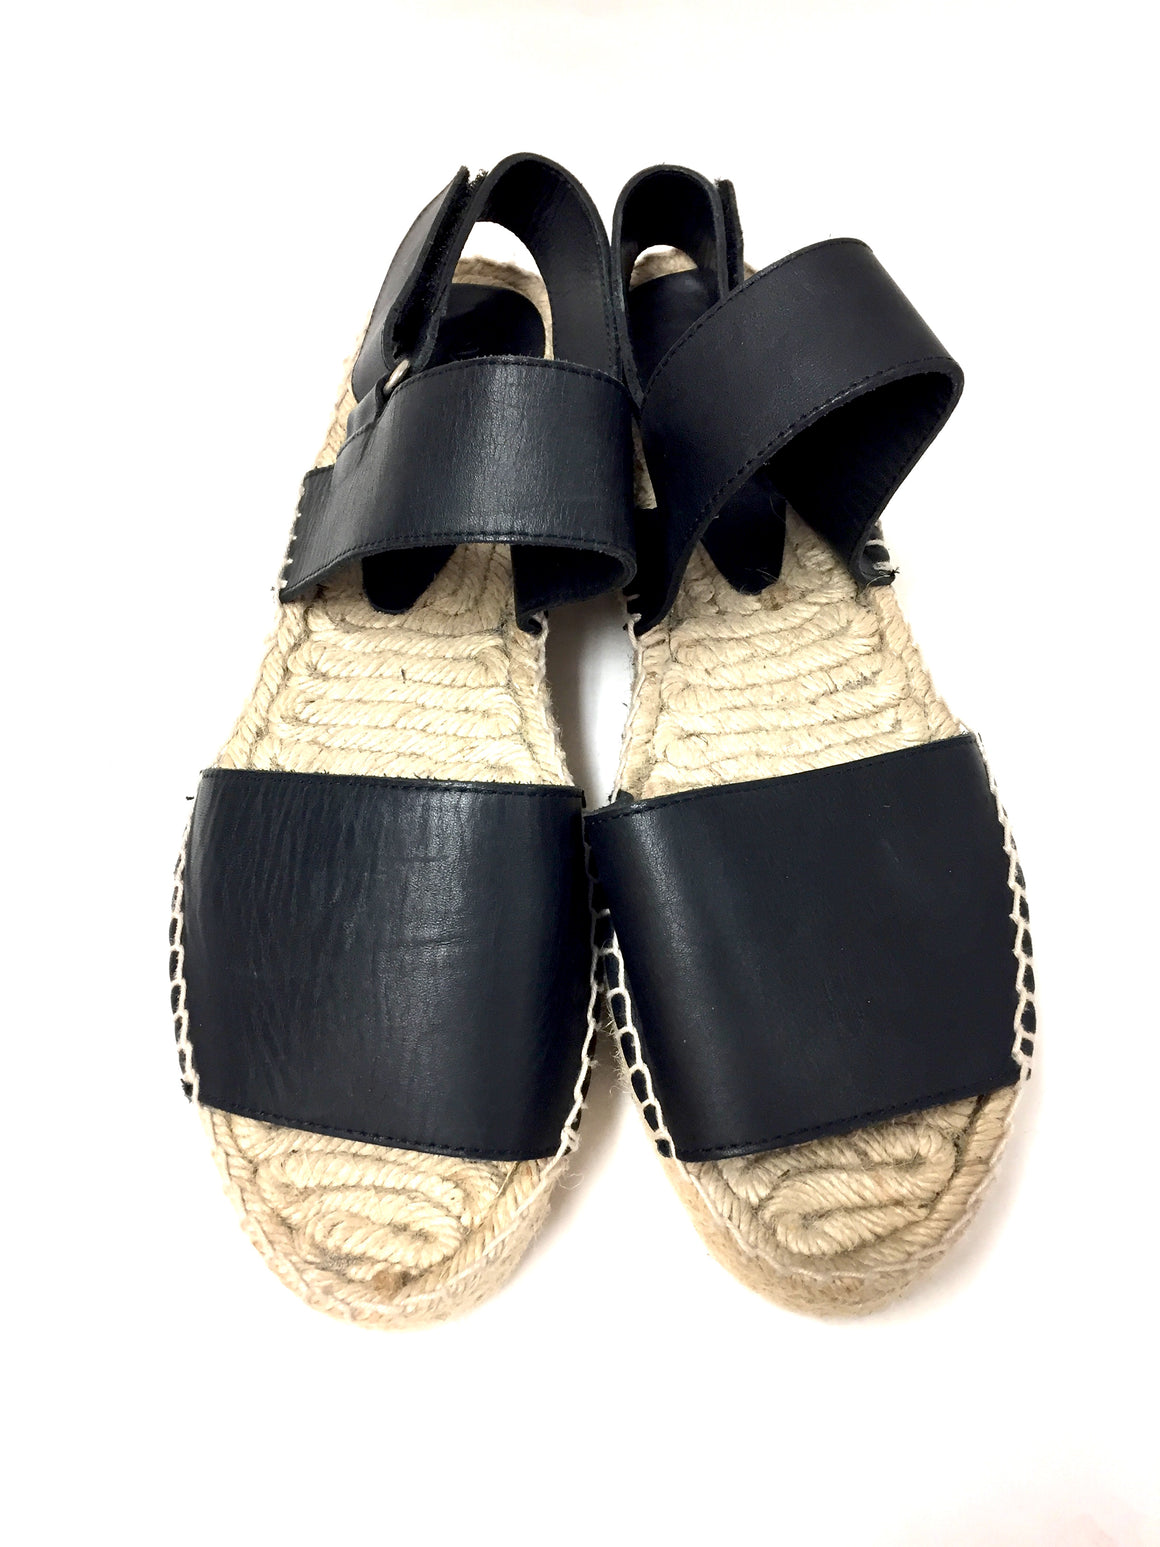 VINCE Black Leather Braided Rope Platform Flat Espadrille  Slingback Sandals Shoes  Size: 10M